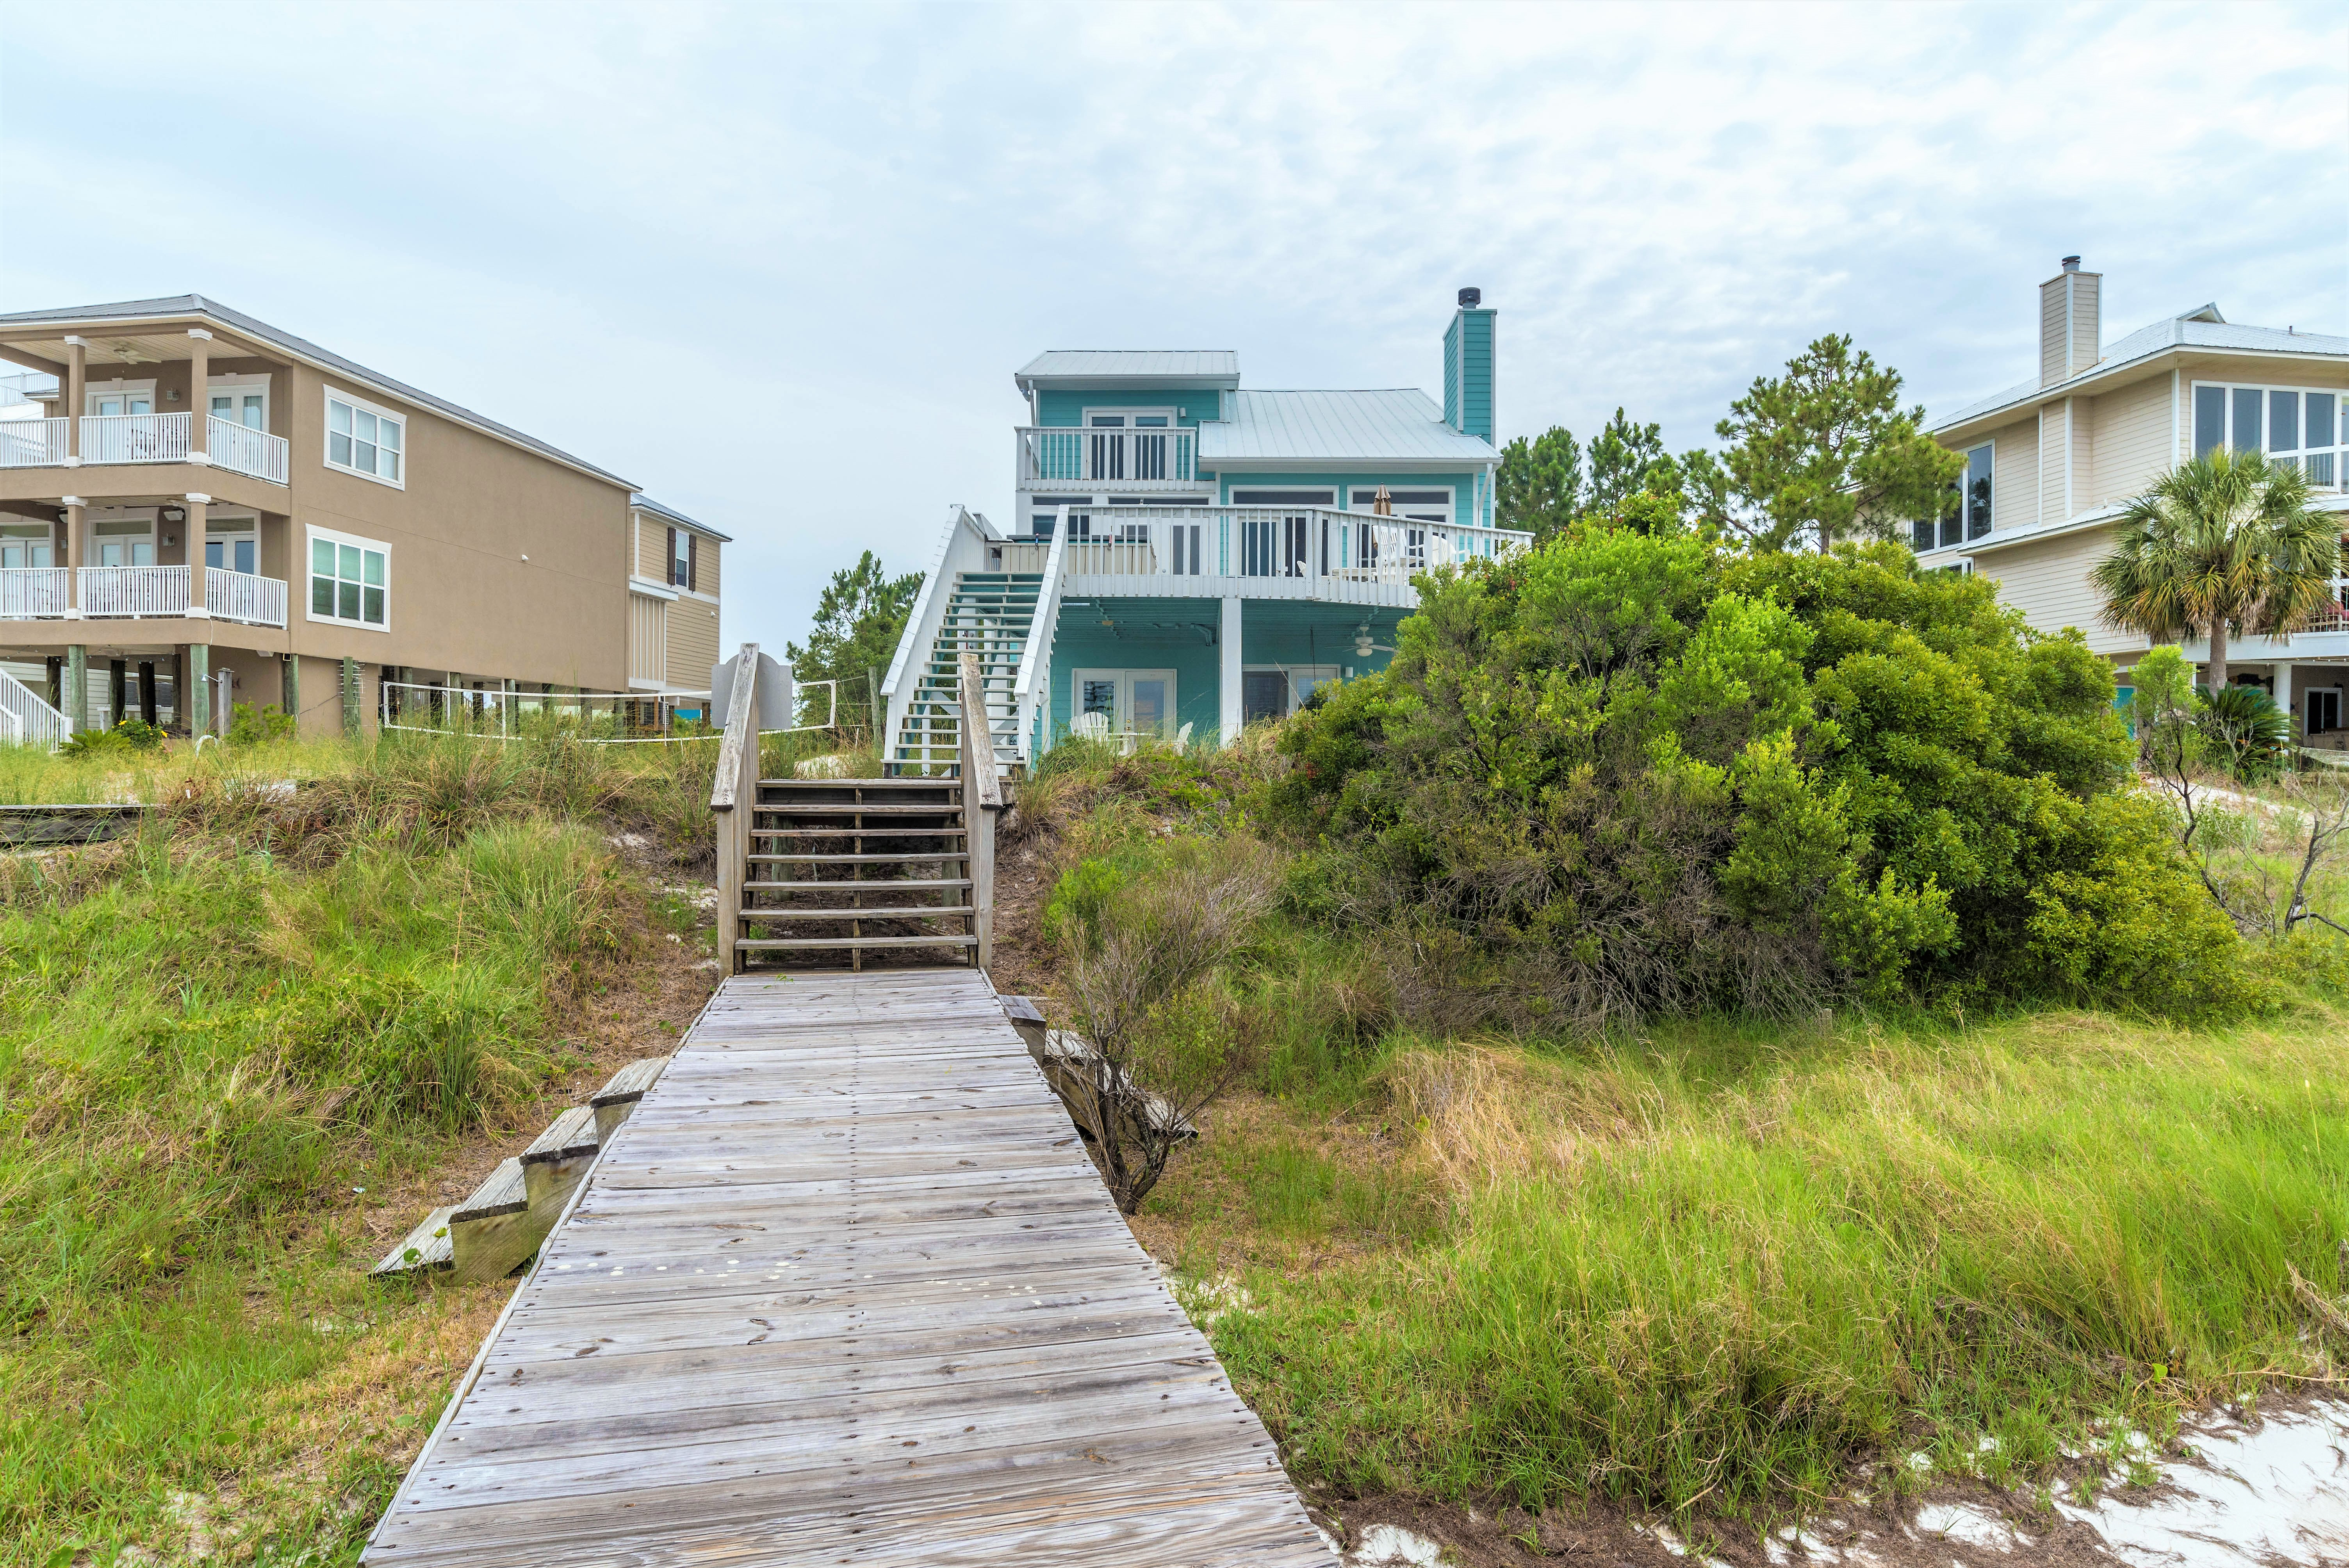 Waterfront home with FISHING PIER, BOAT LIFT, AND SAND VOLLEYBALL COURT!!